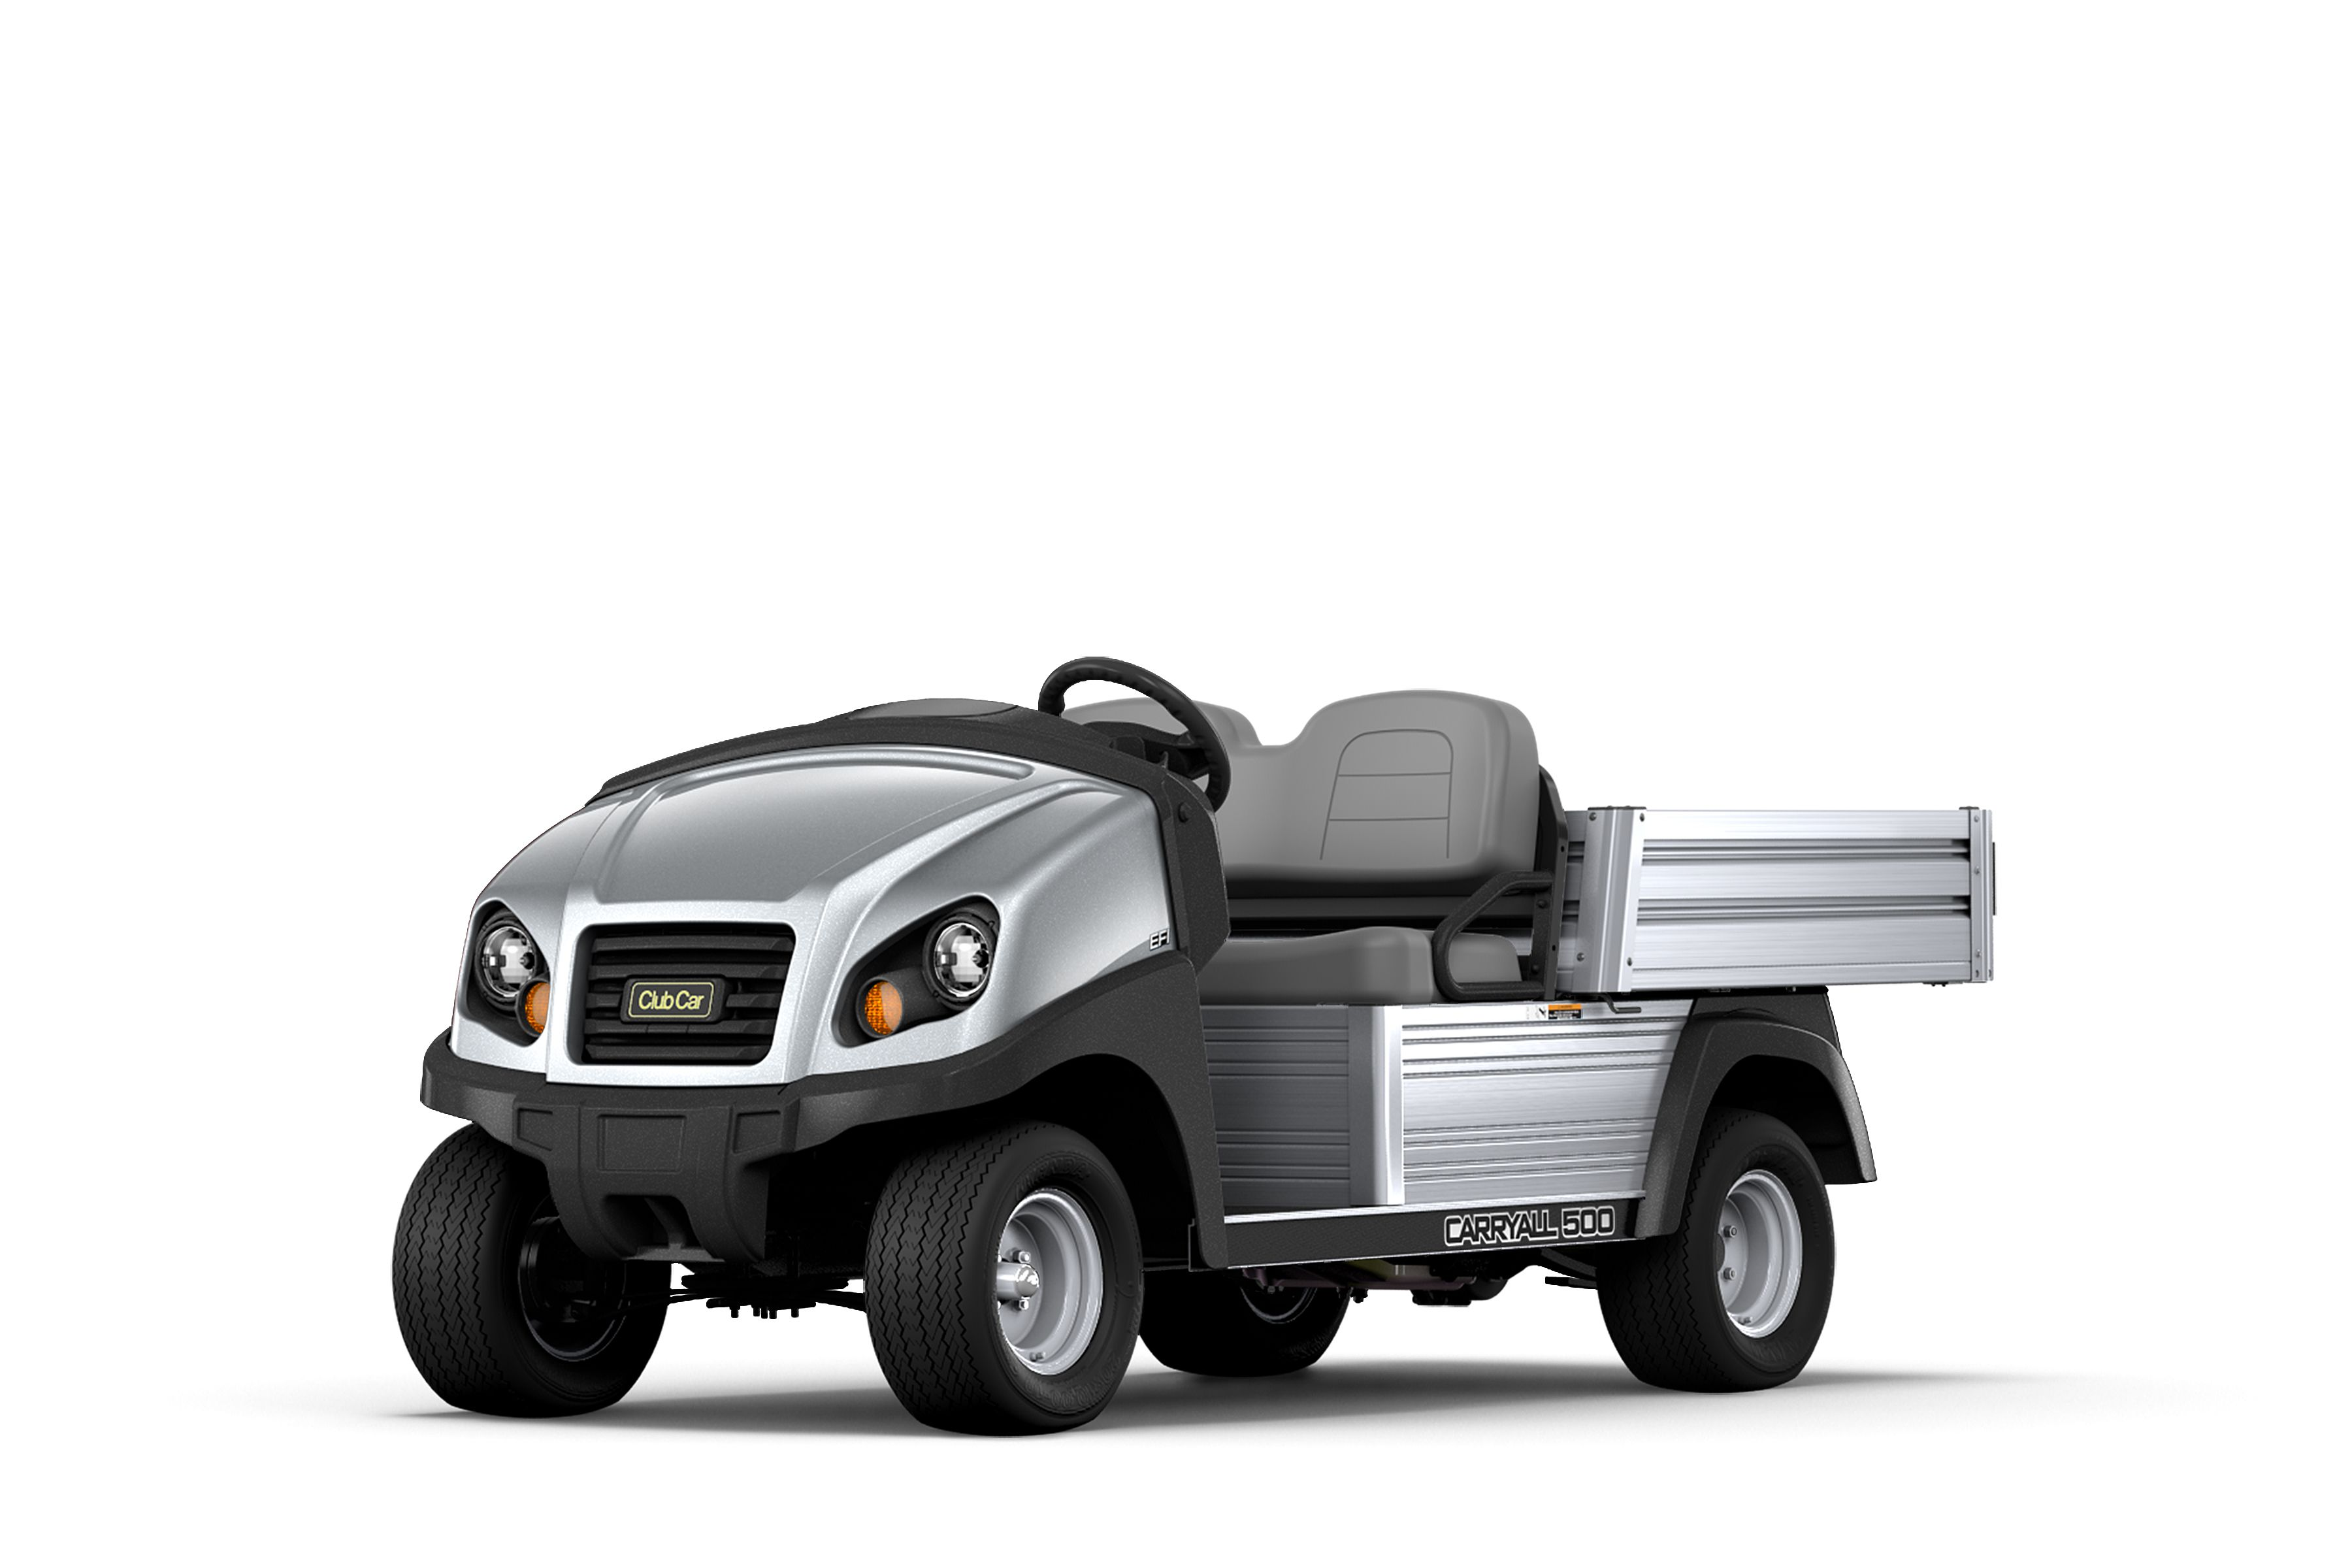 CLUB CAR CARRYALL 500 UTILITY | Vehicles | Pinterest | Vehicle and Cars